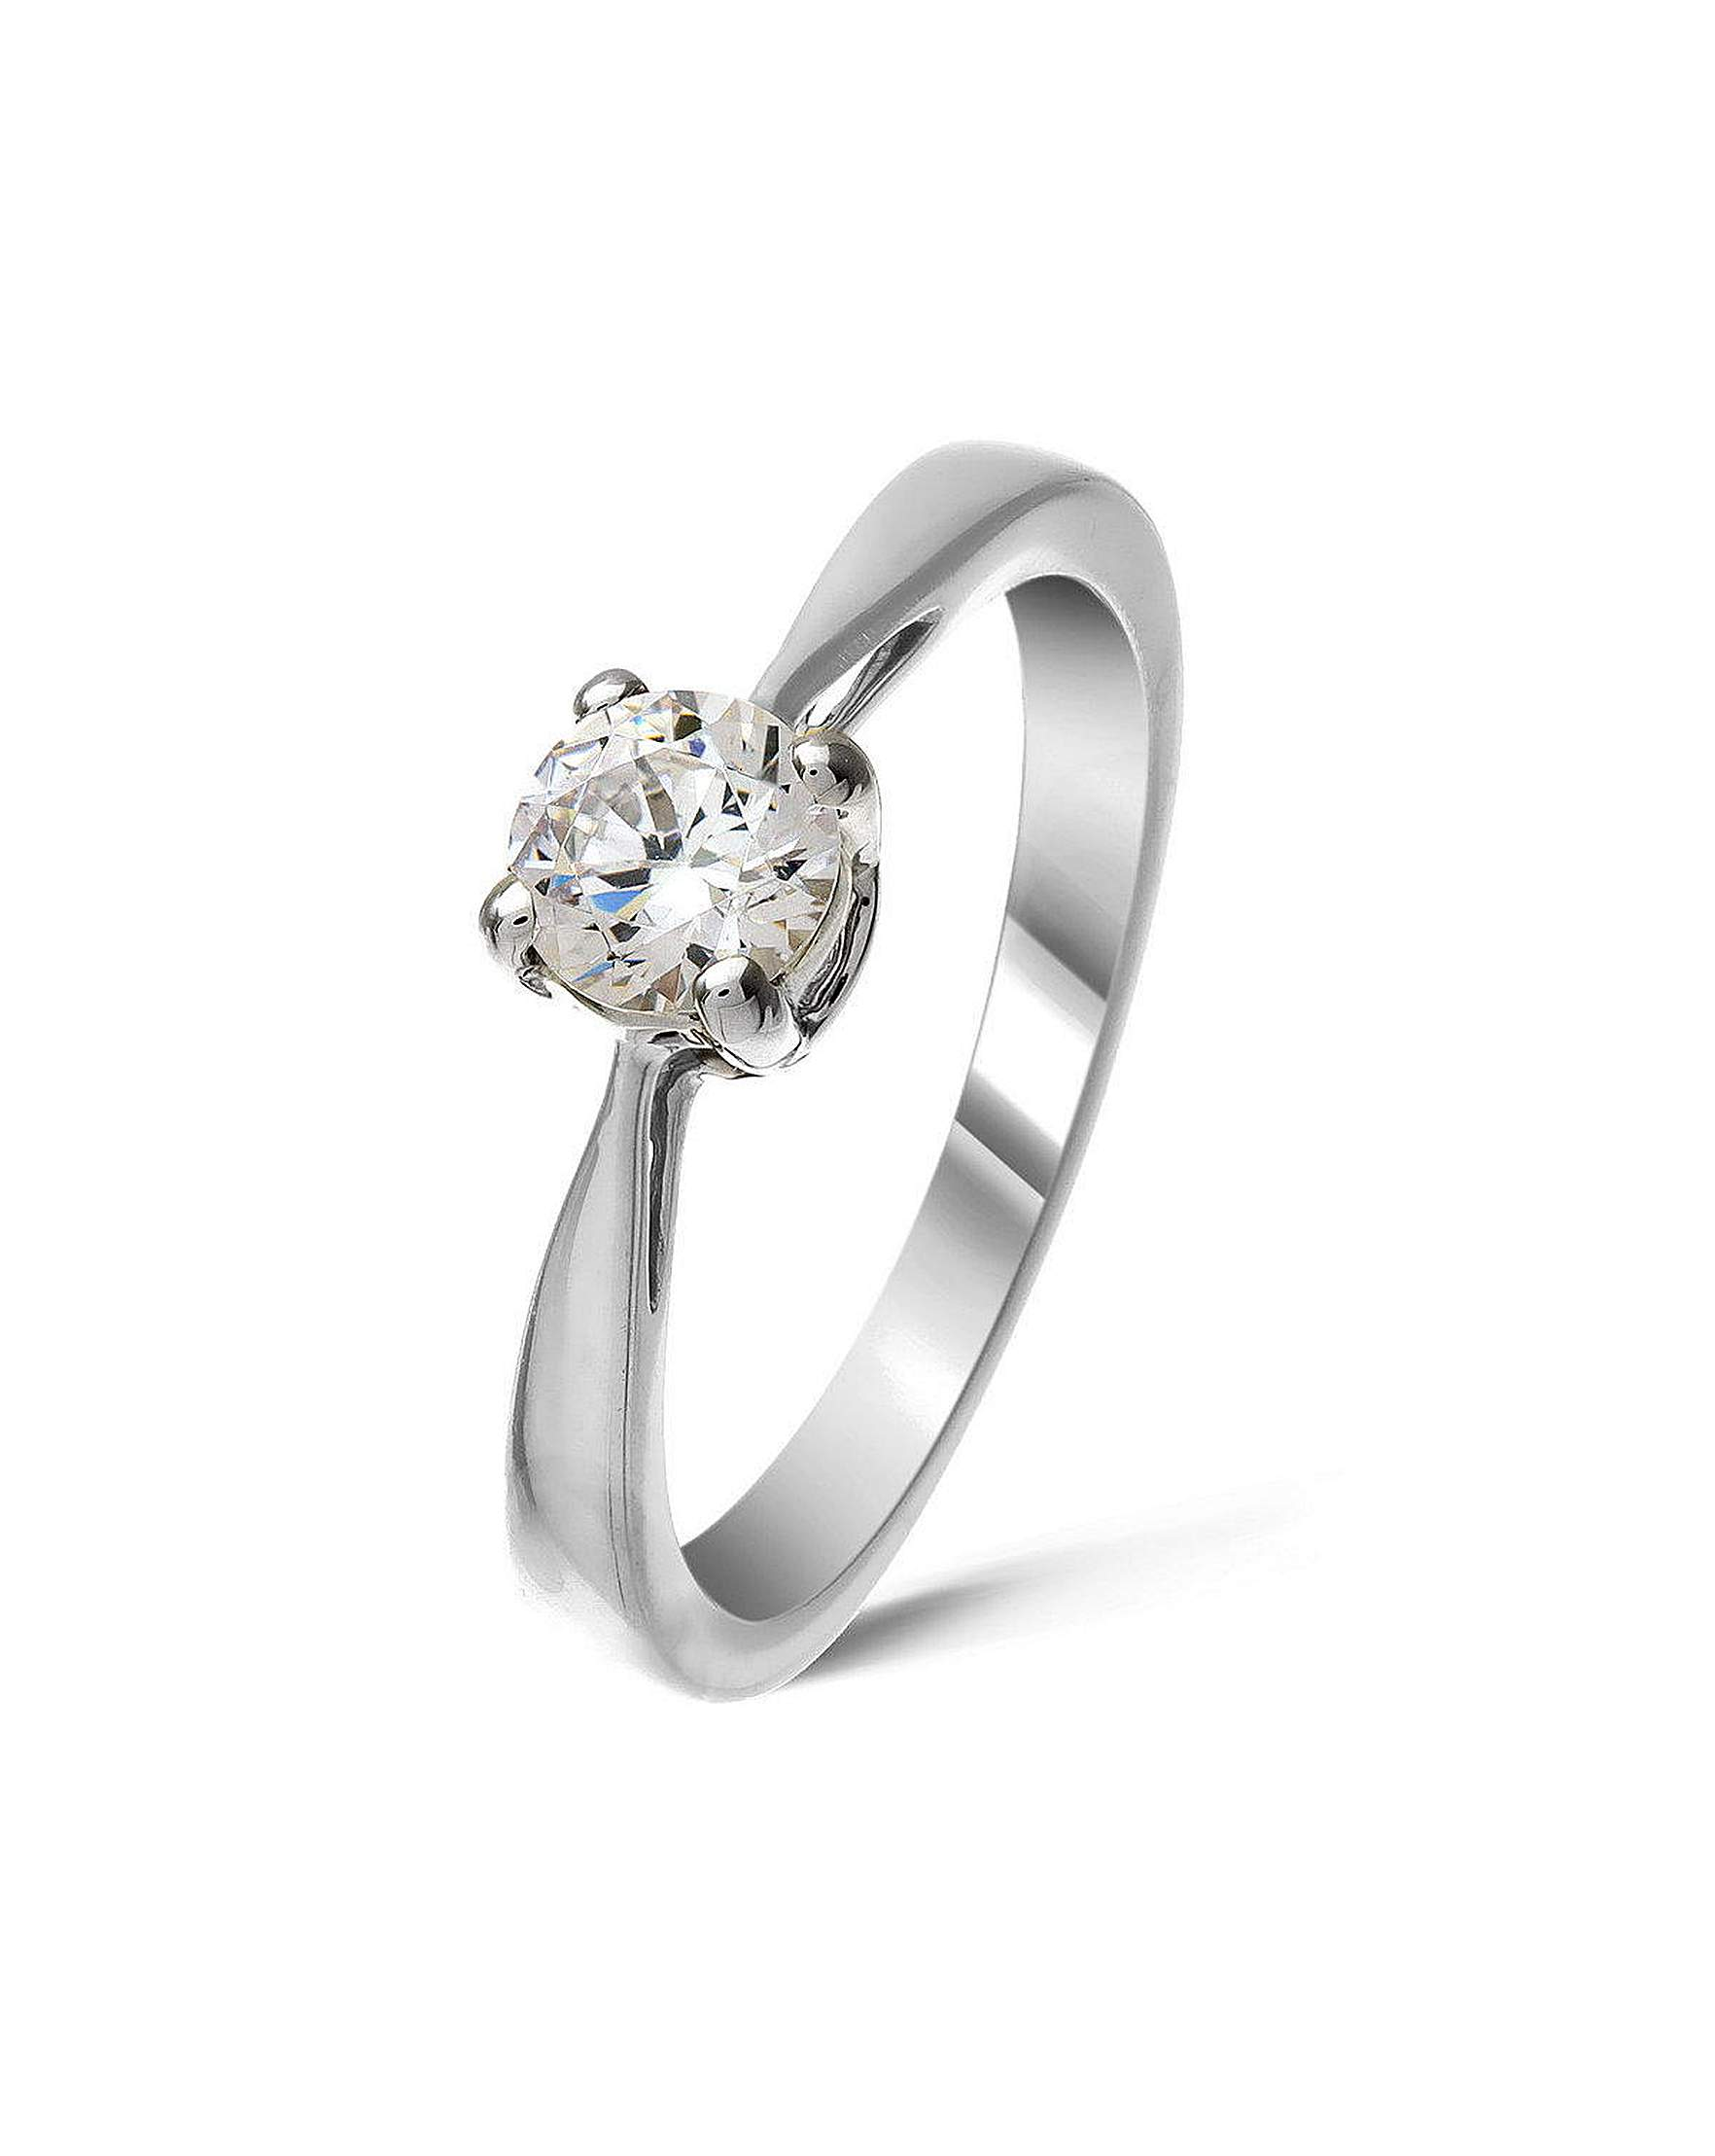 rings detail engagement new solitaire brand diamond platinum gia as index ring set a with wedding band